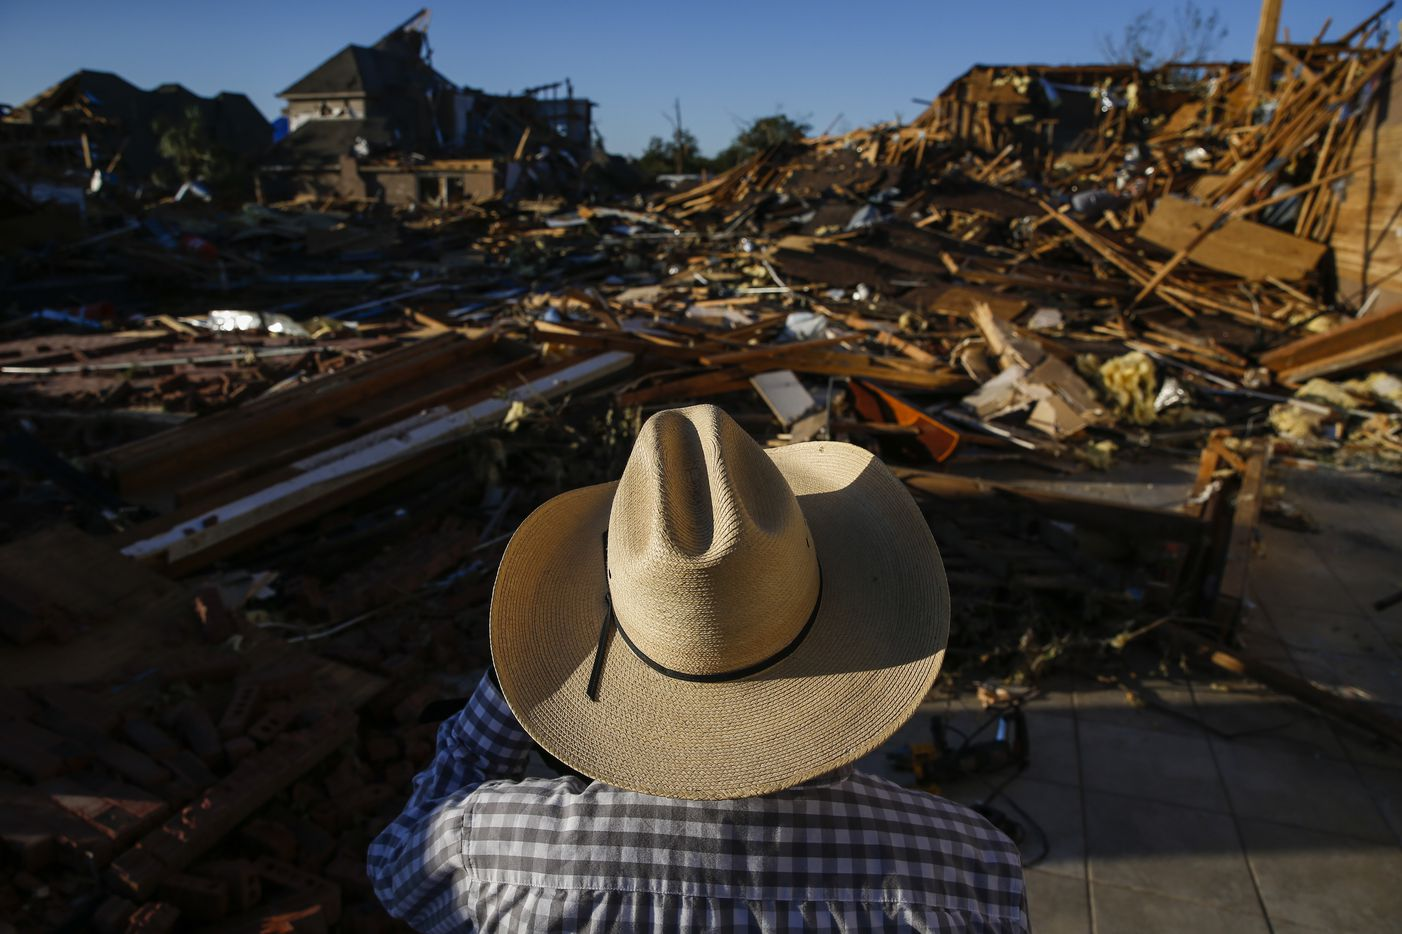 Hector Rodriguez, who has served as Deacon of Primera Iglesia Bautista Mexicana since 1987, surveys damage at the church just off of Walnut Hill Lane in Dallas, on Monday, Oct. 21, 2019 after a tornado hit the night before.